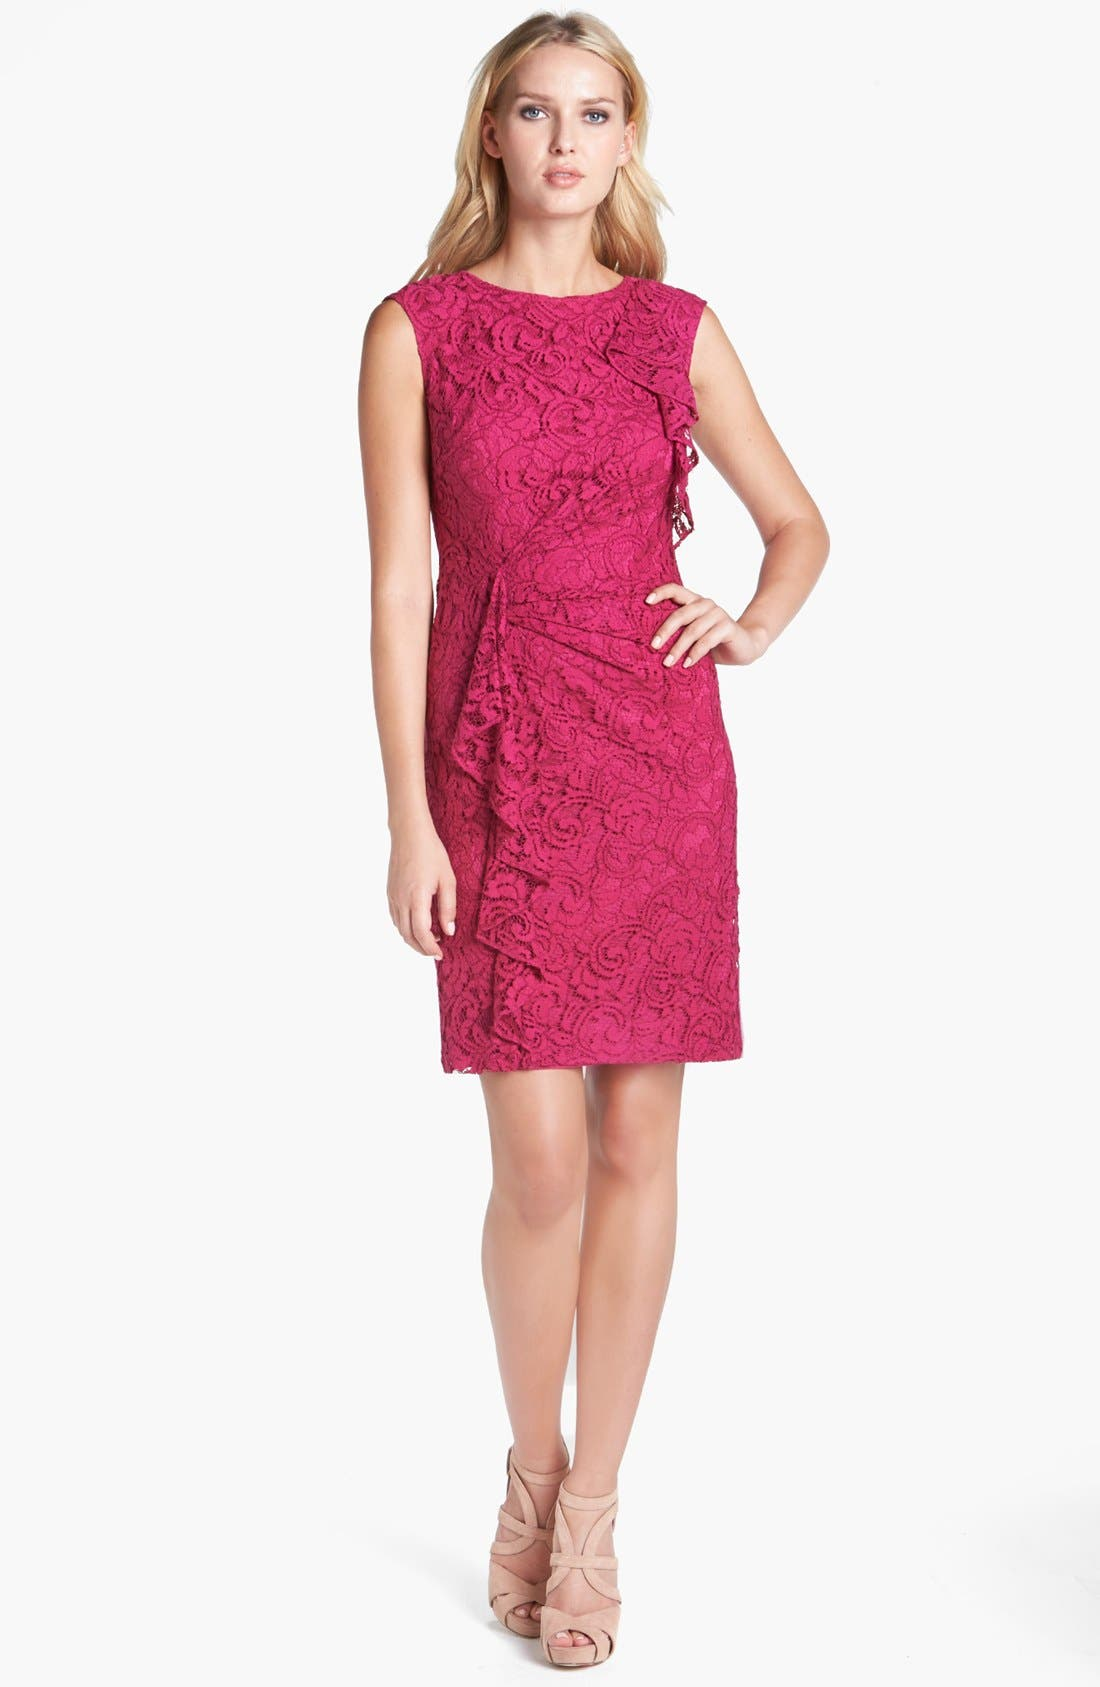 Alternate Image 1 Selected - Adrianna Papell Ruffled Lace Sheath Dress